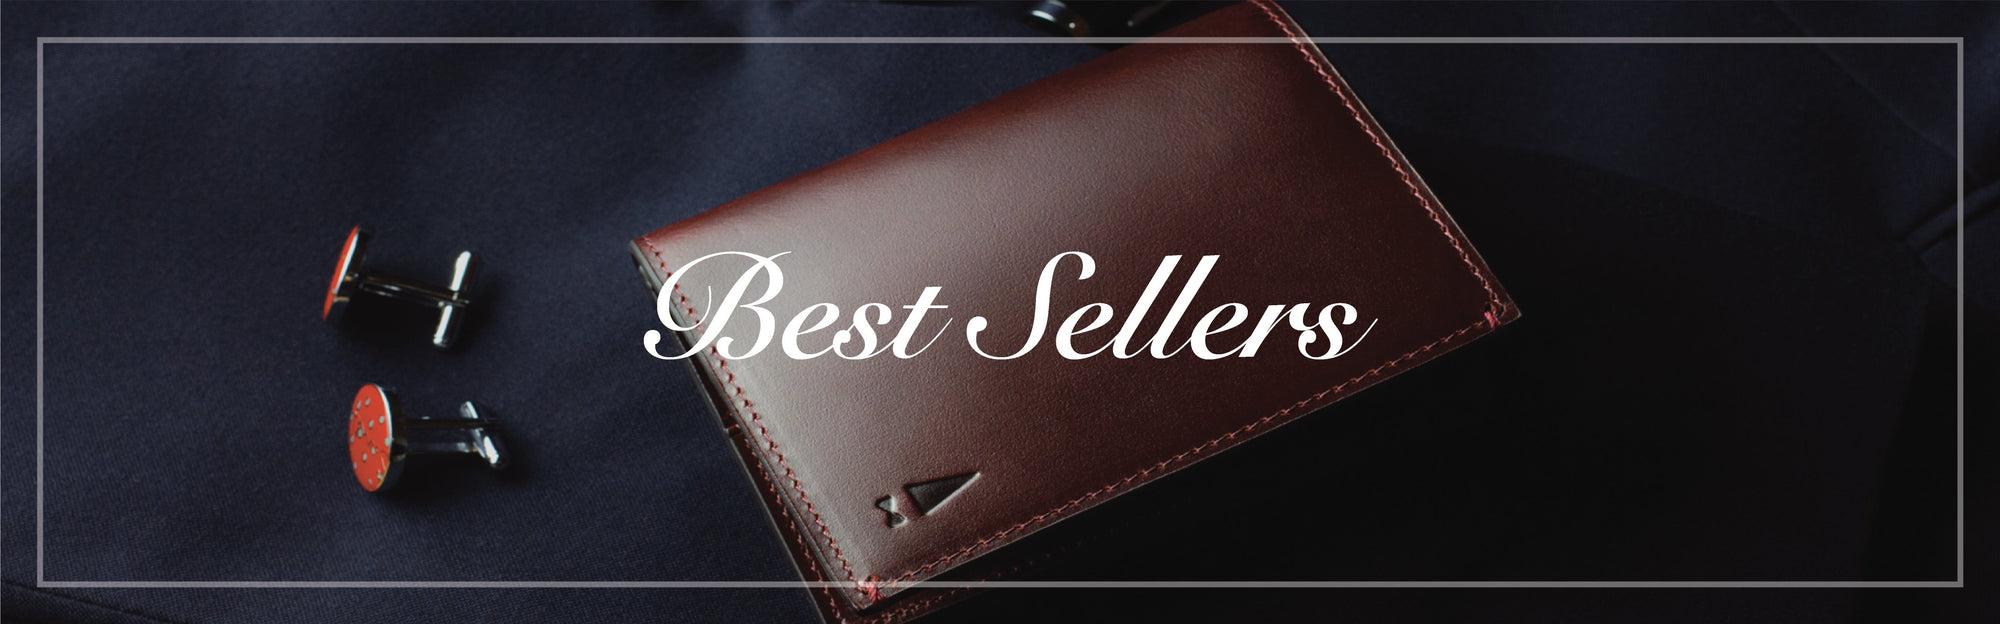 Best Sellers for him